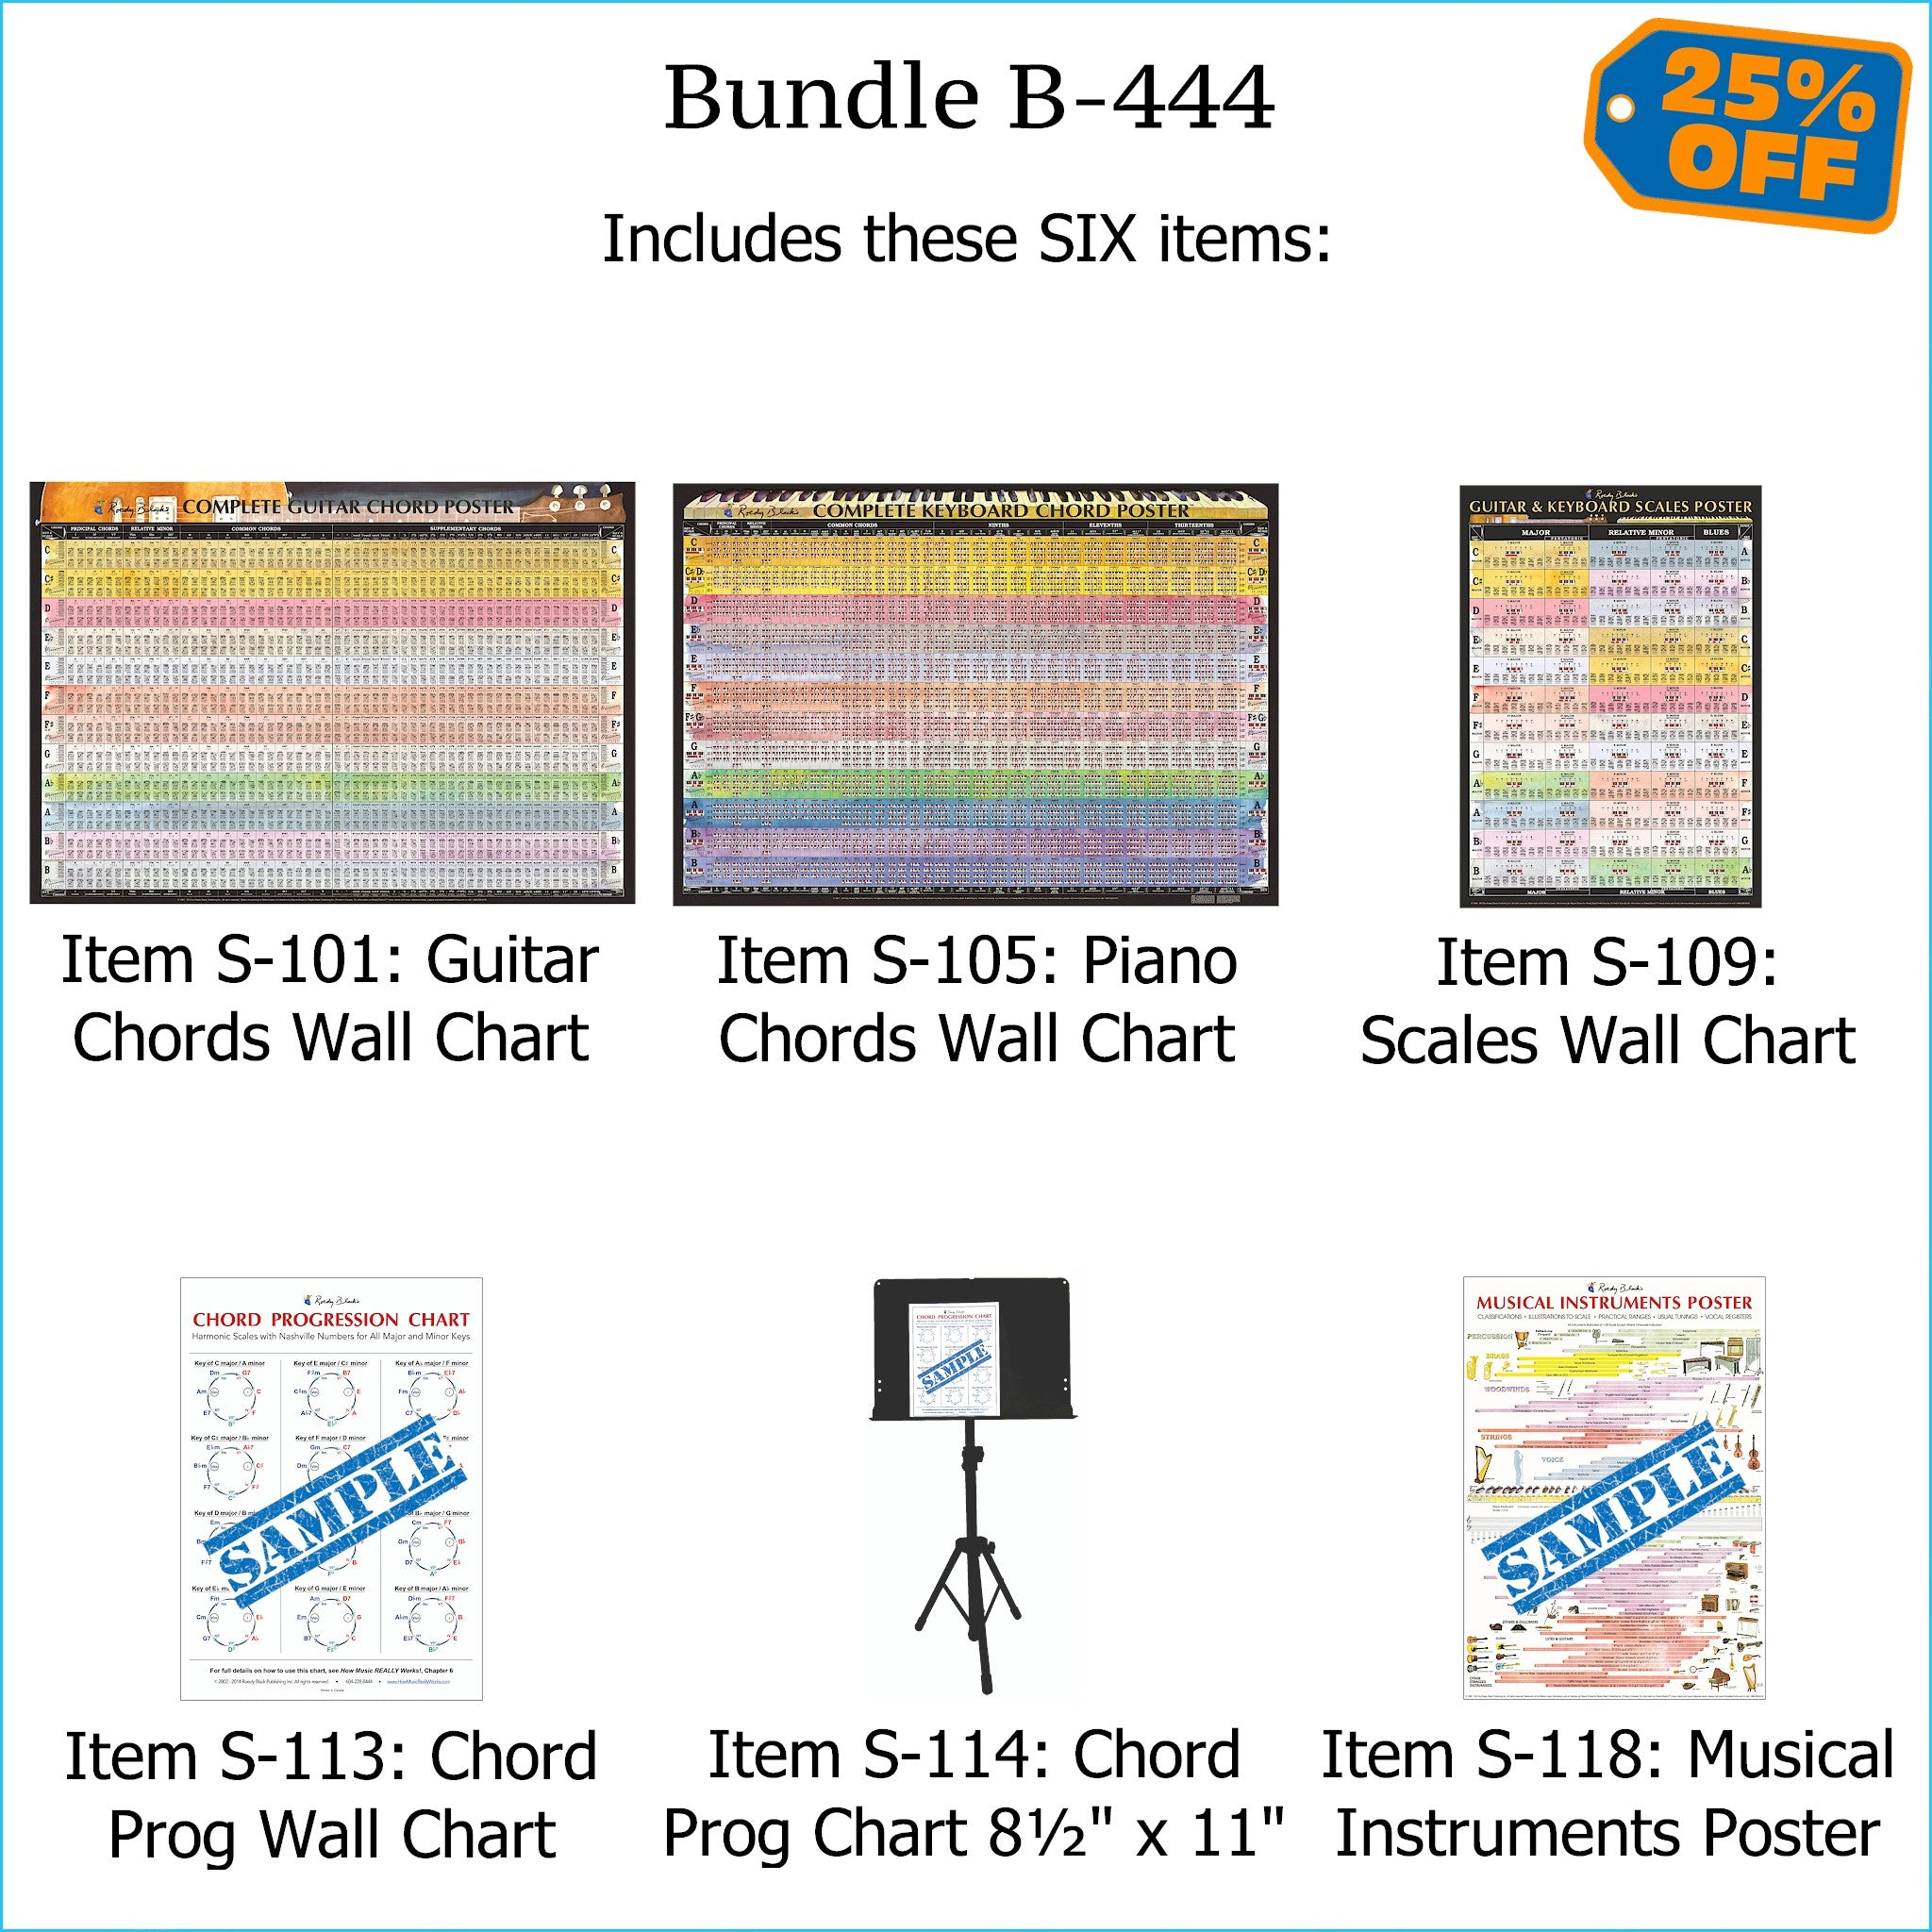 Bundle B-444: FIVE Laminated Wall Posters: Complete Guitar Chords, Complete Keyboard Chords, Scales, Chord Progressions, & Instruments. FREE SHIPPING – USA & Canada.